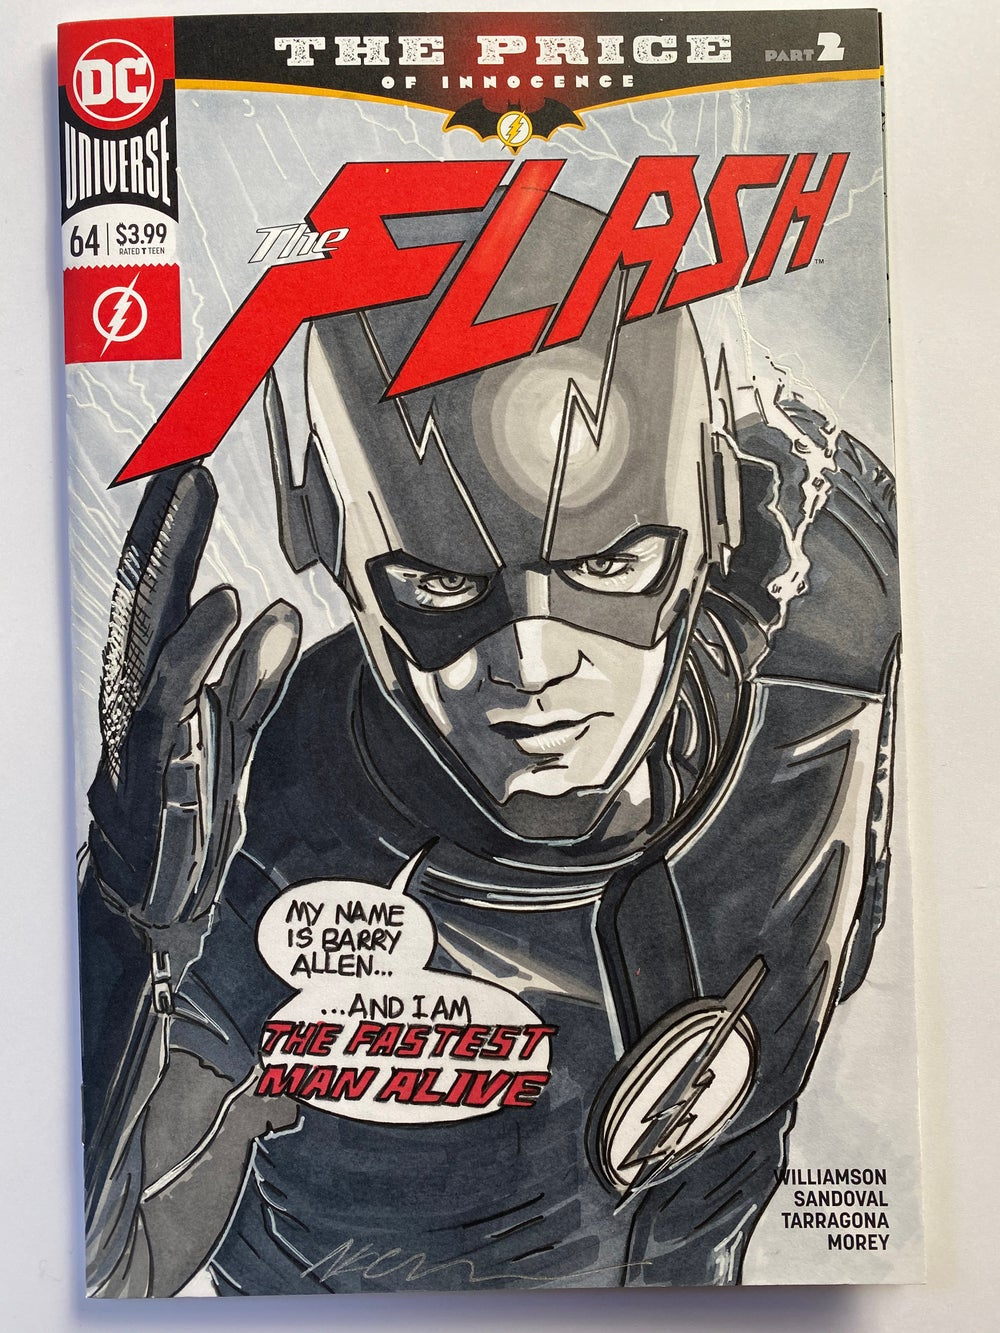 Image of DC Comics The Flash #64 Sketch Cover with 'The Flash' Original Art